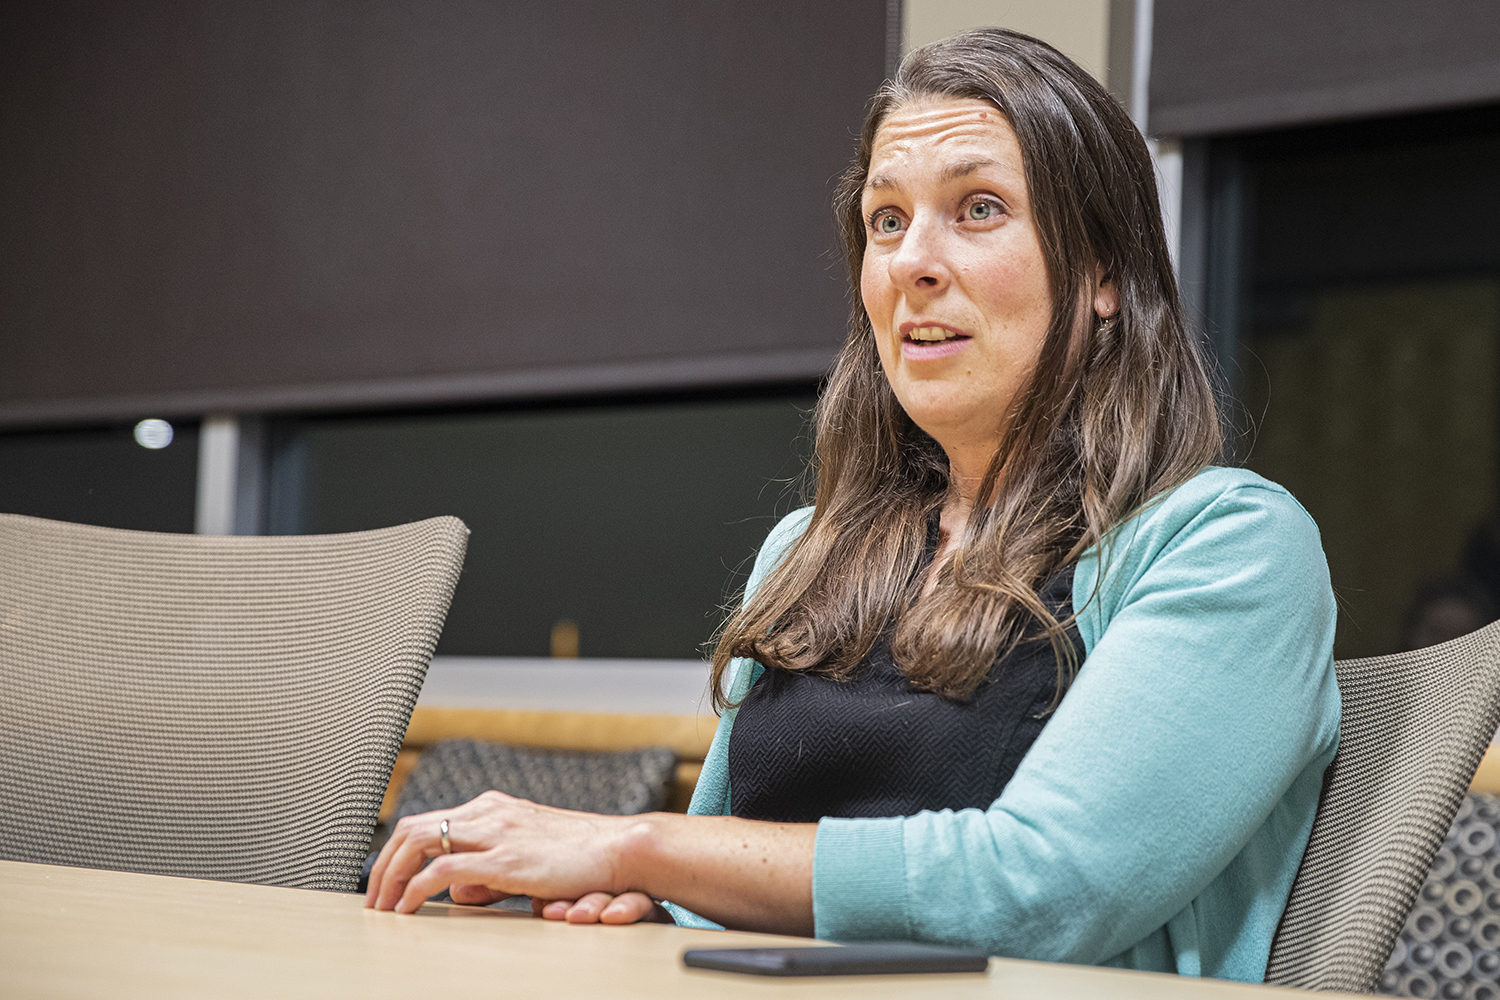 City Council candidate Laura Bergus sits down for an interview with The Daily Iowan in the Adler Journalism Building on Monday, Oct. 21, 2019.